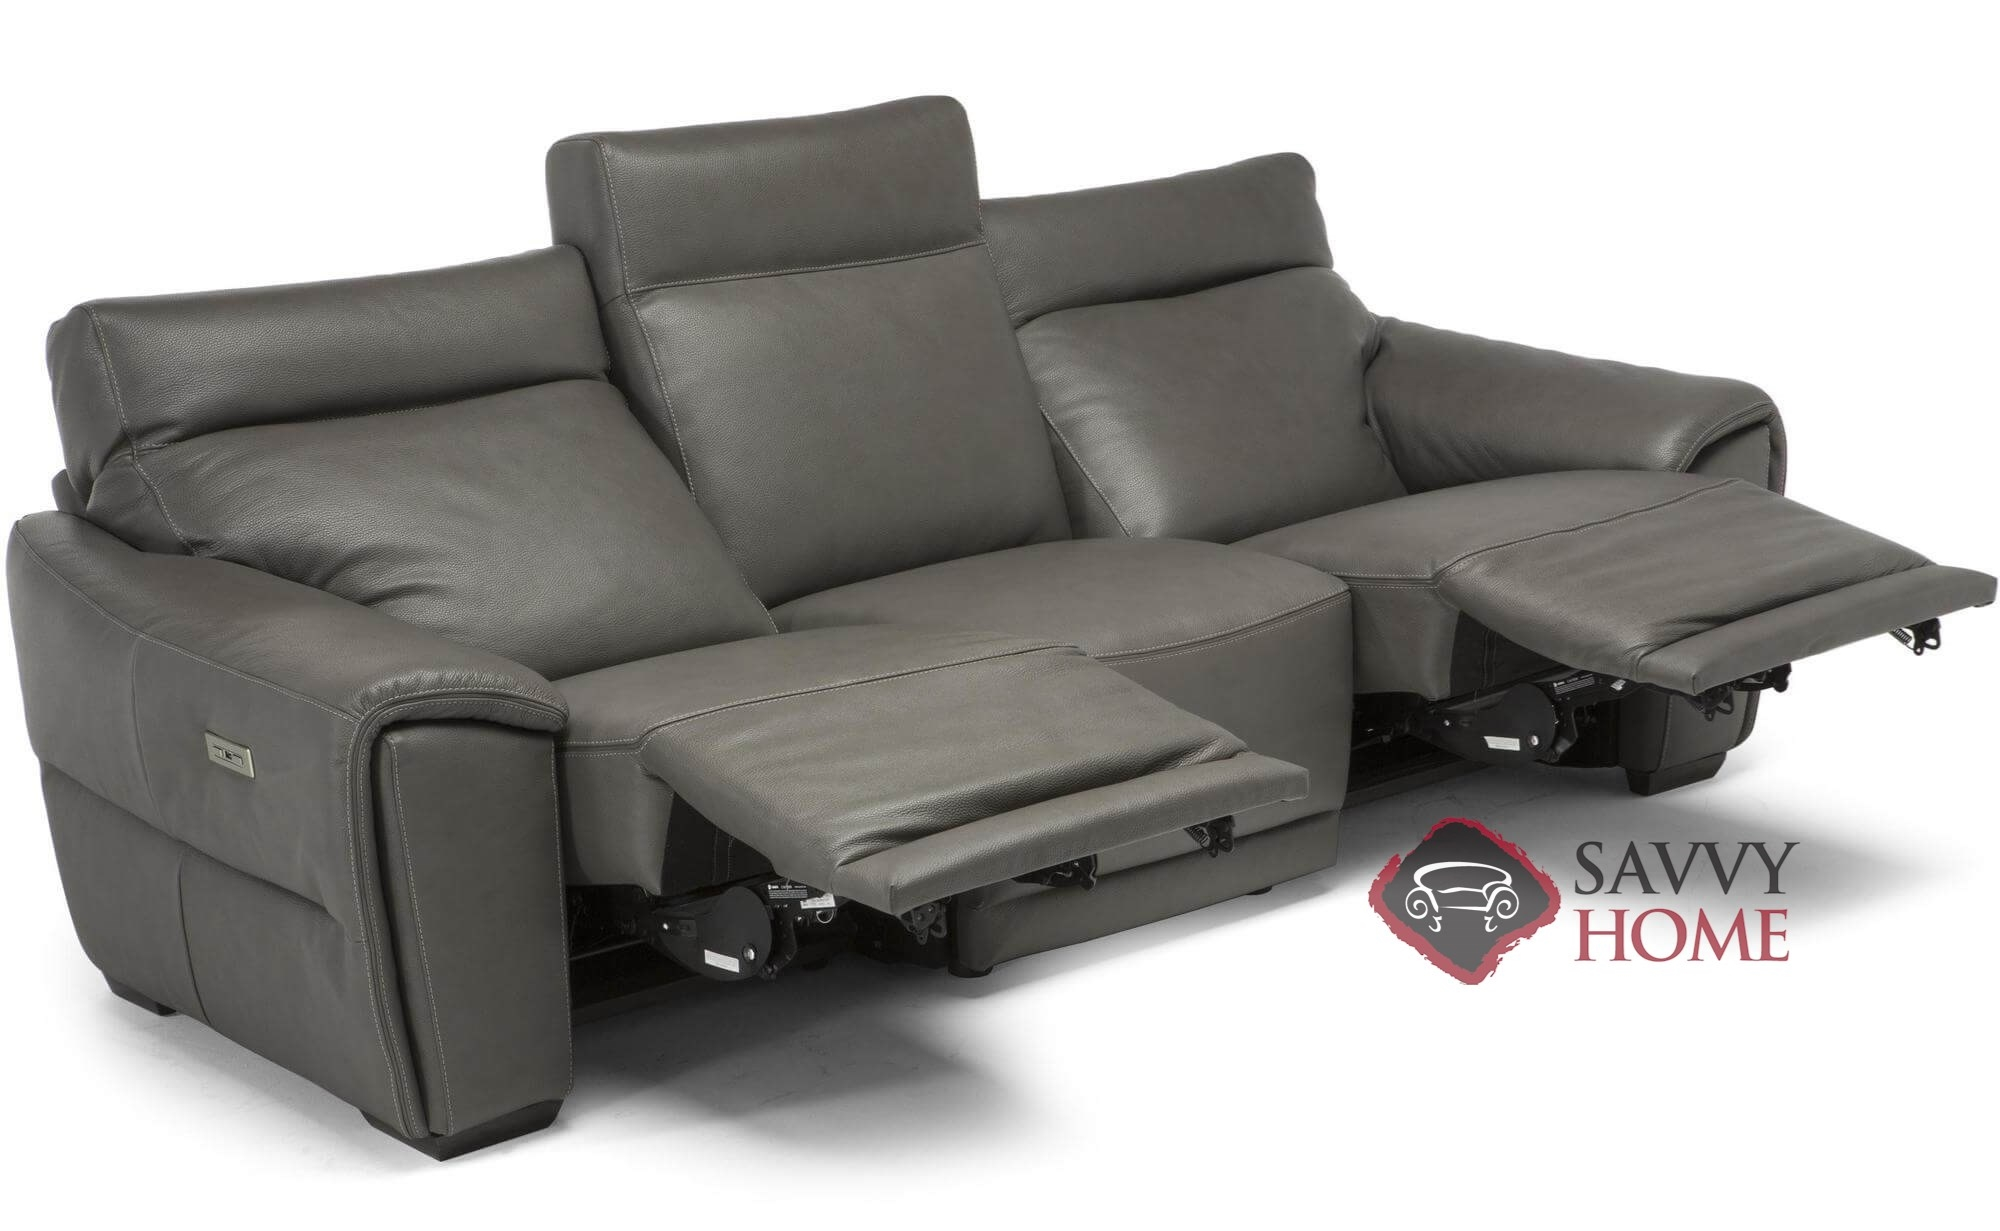 Rispetto (C048) Leather Reclining Sofa by Natuzzi is Fully ...